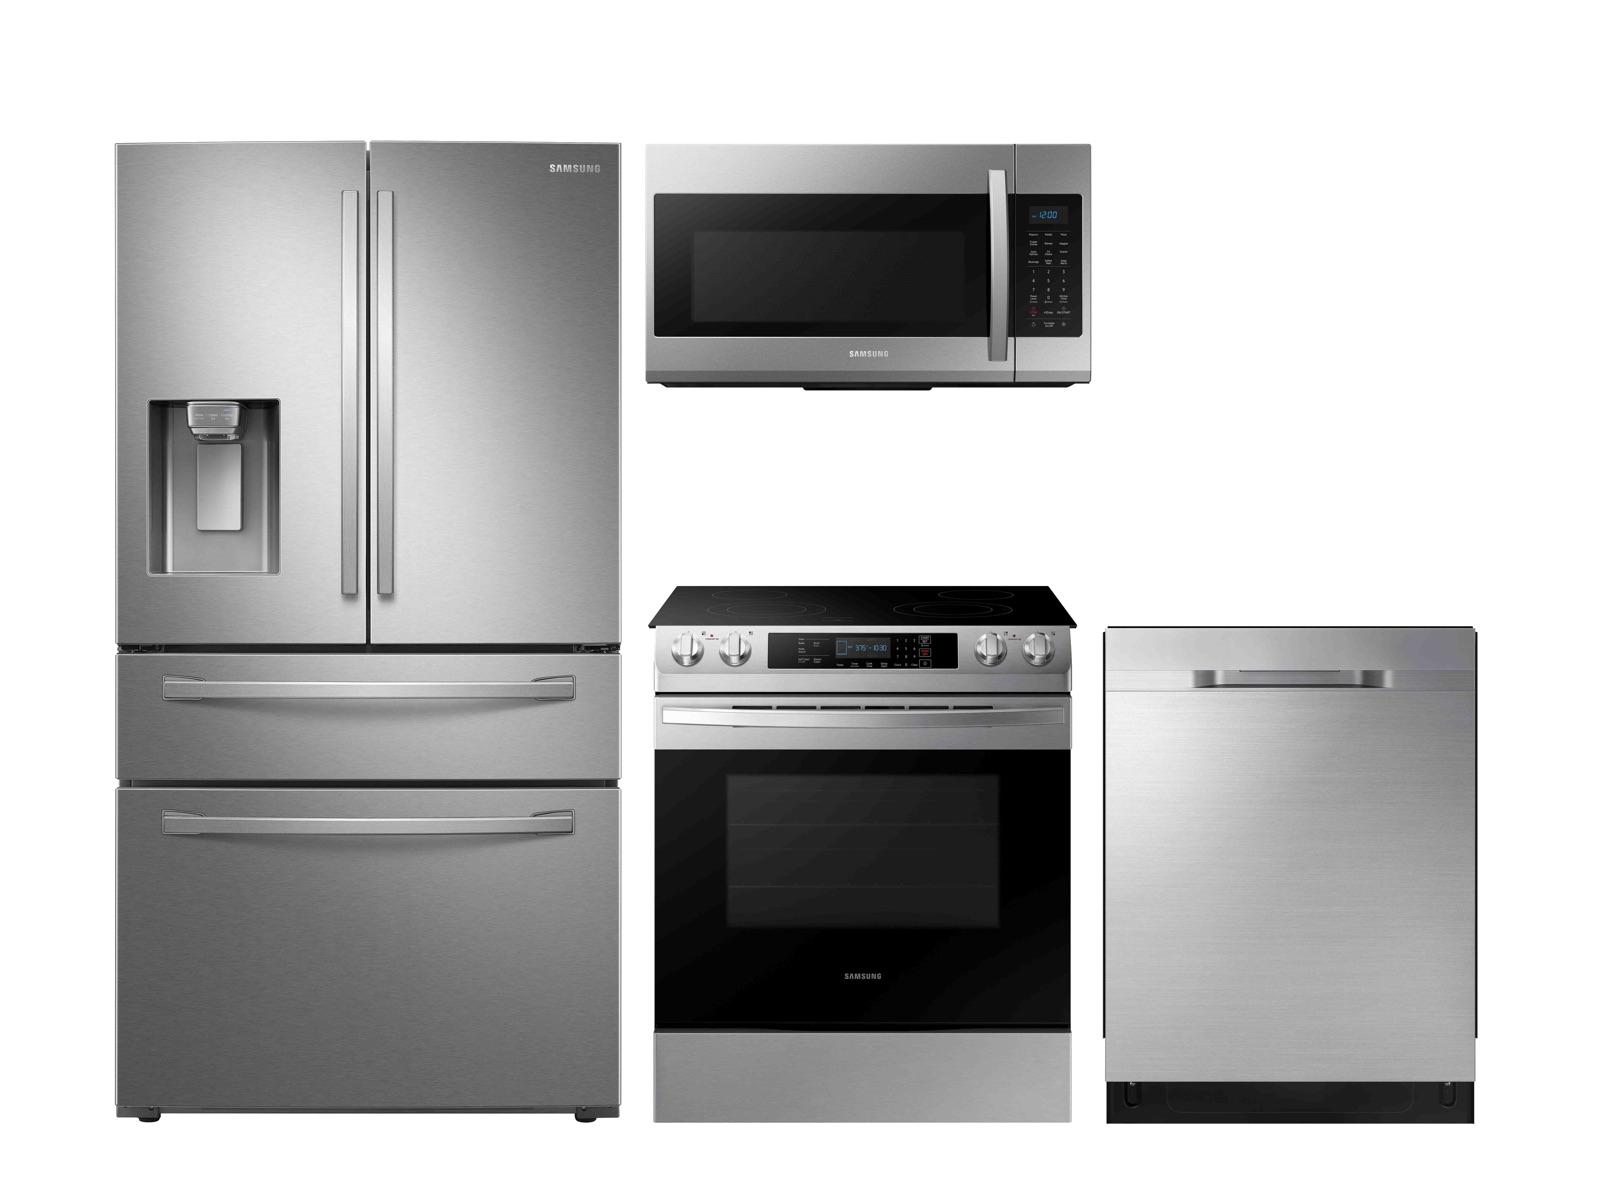 Modern built-in design with electric range